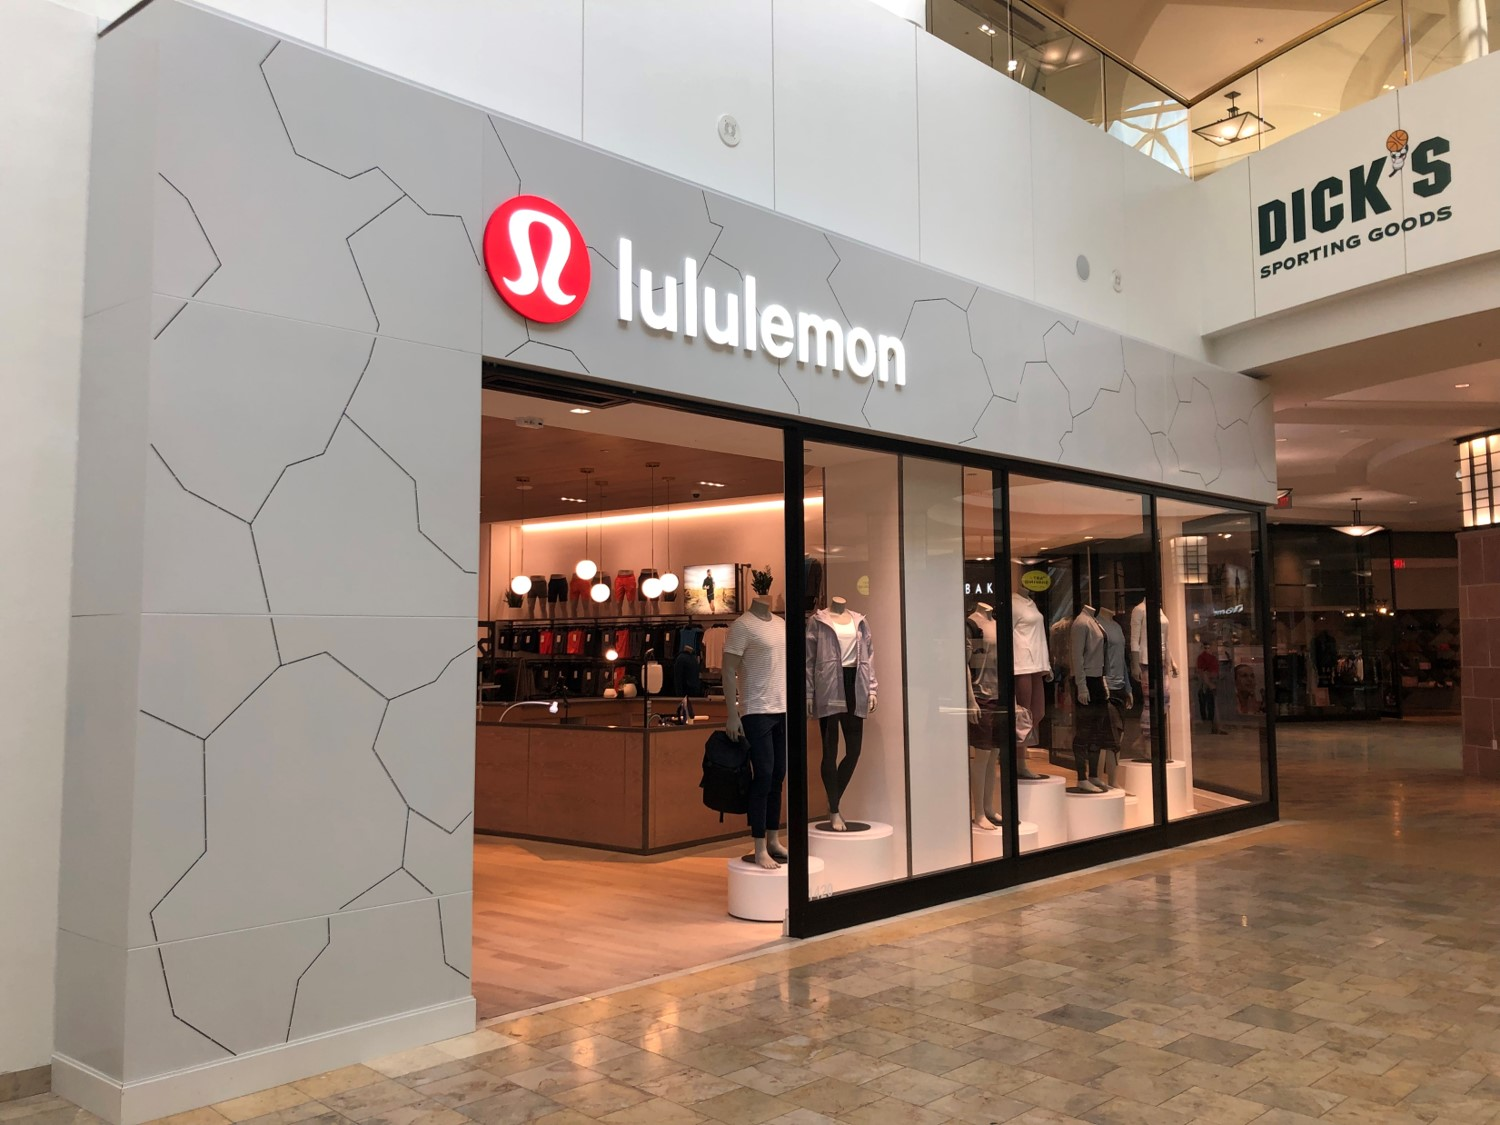 AWP-Fabrication-Storefronts-Lululemon